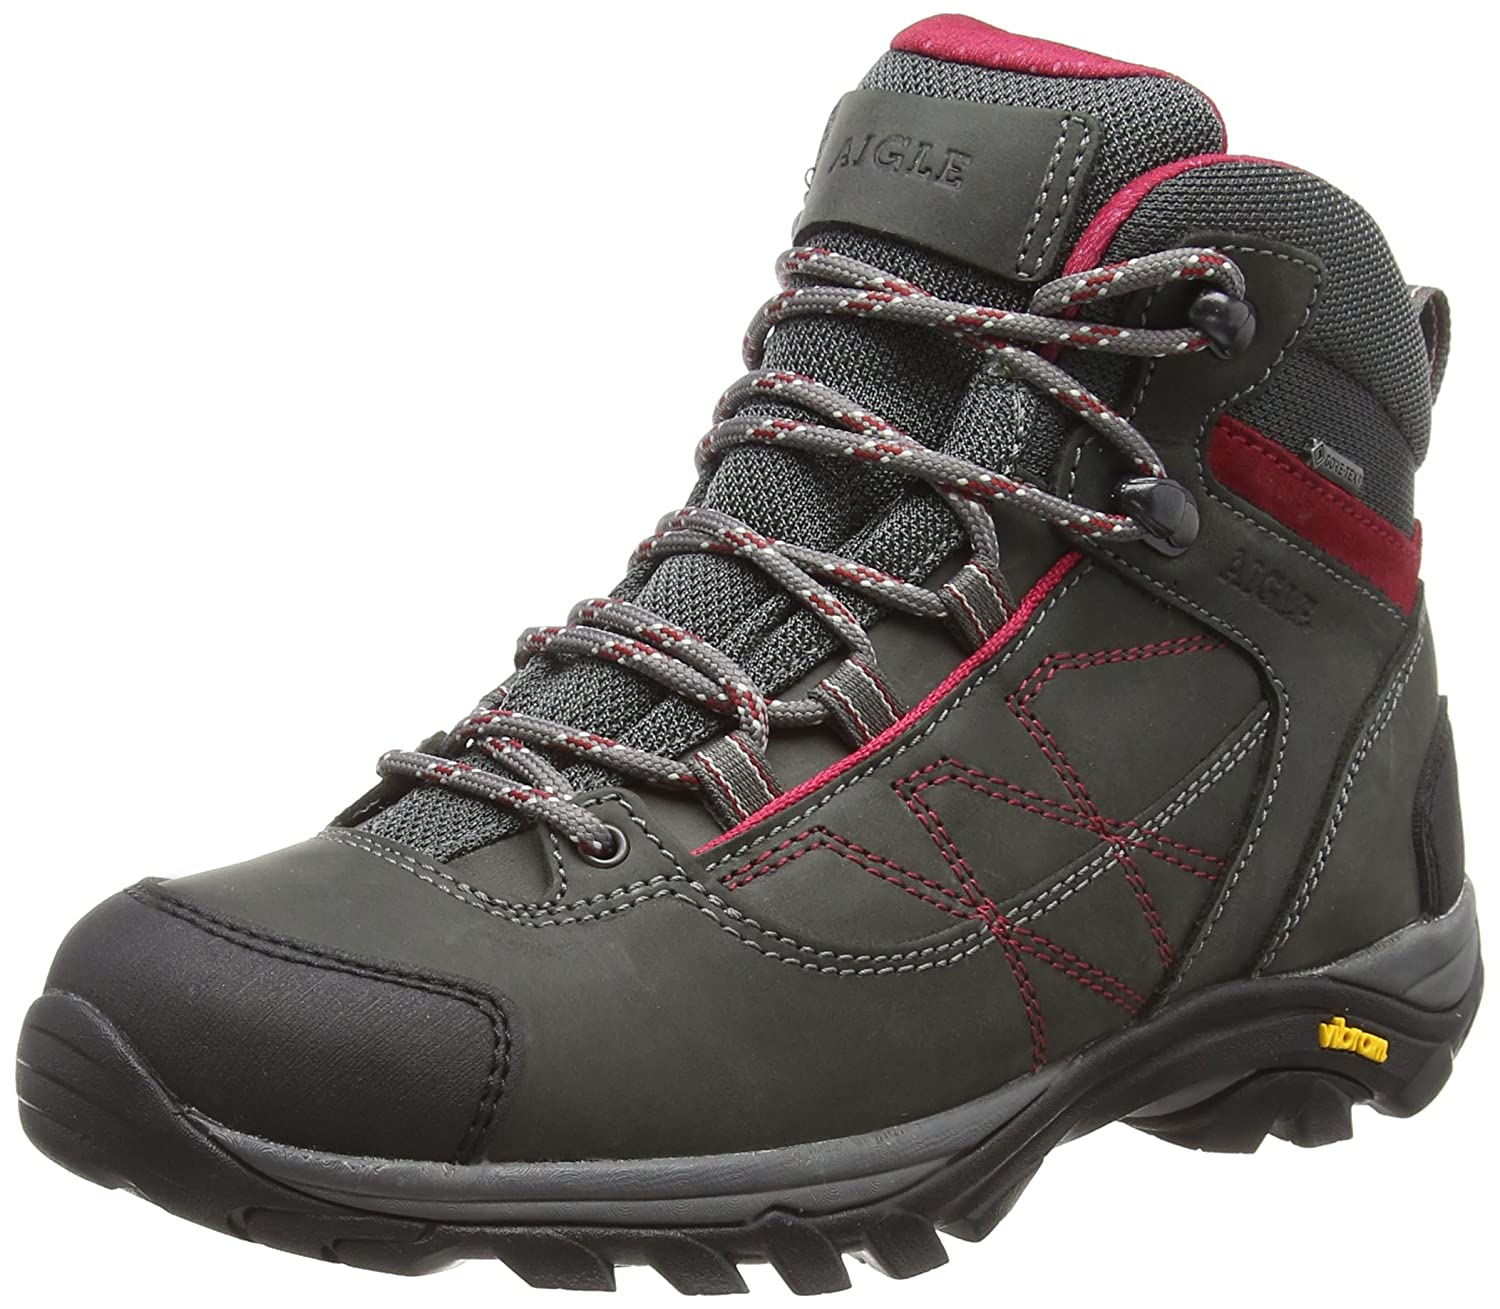 047e12168d0 Aigle Women's Mooven Leather W Gore-tex High Rise Hiking Shoes ...